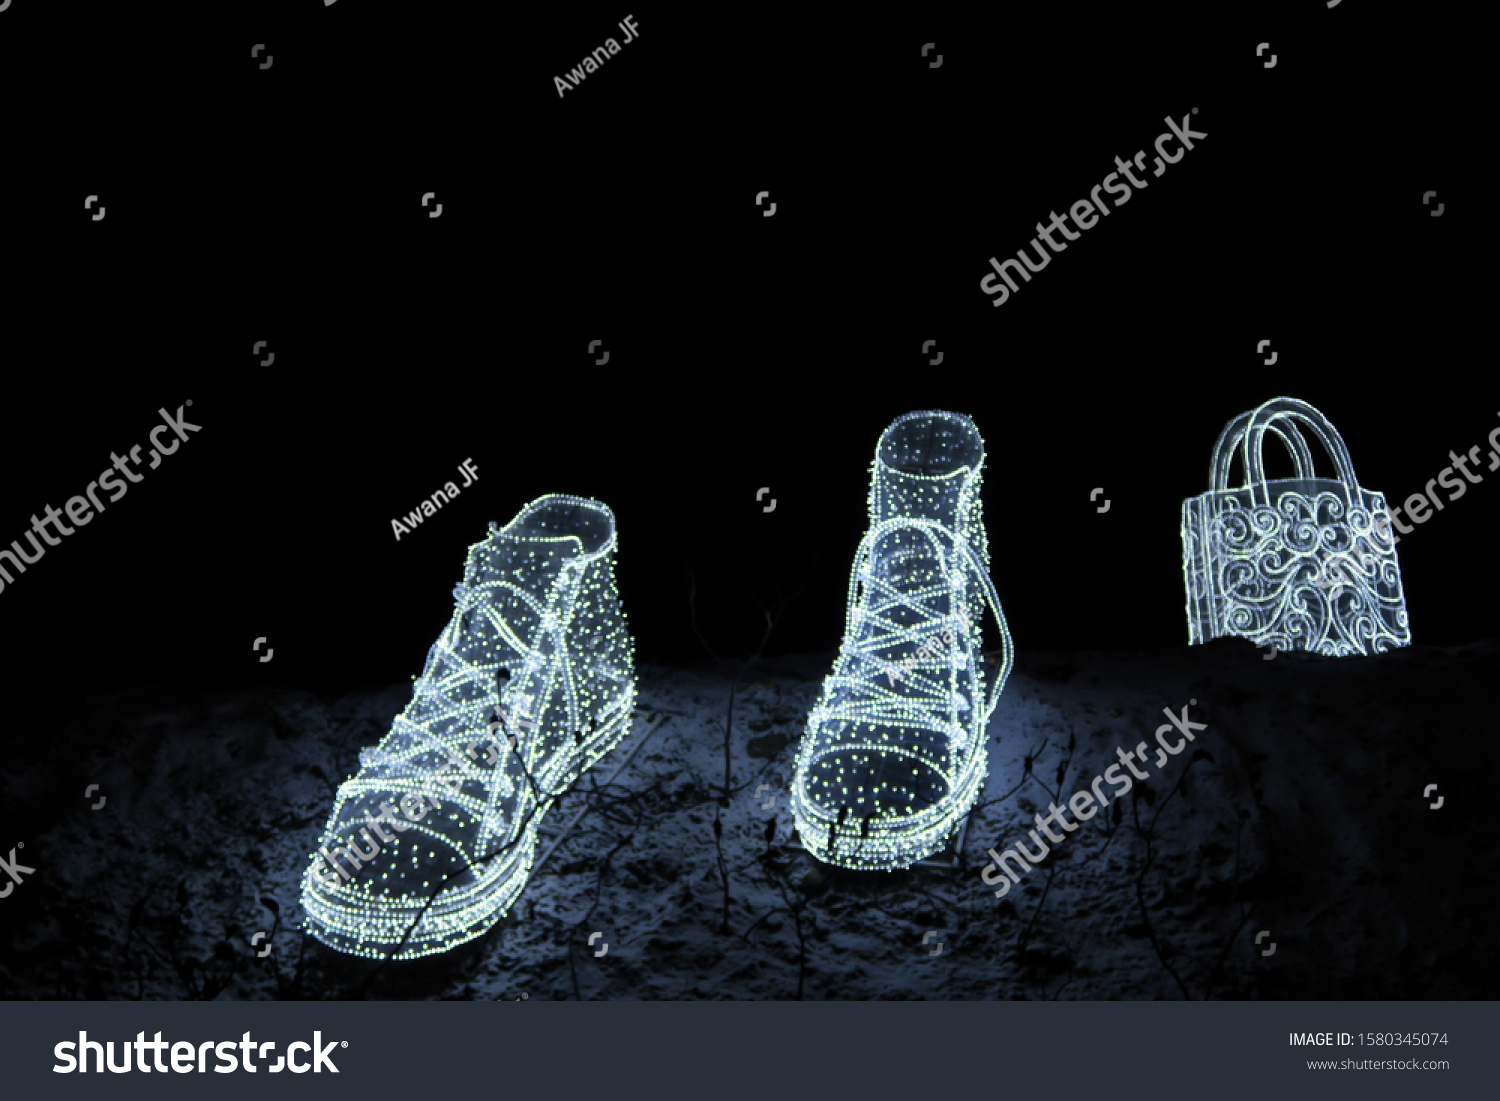 stock-photo-luminous-shoes-representing-